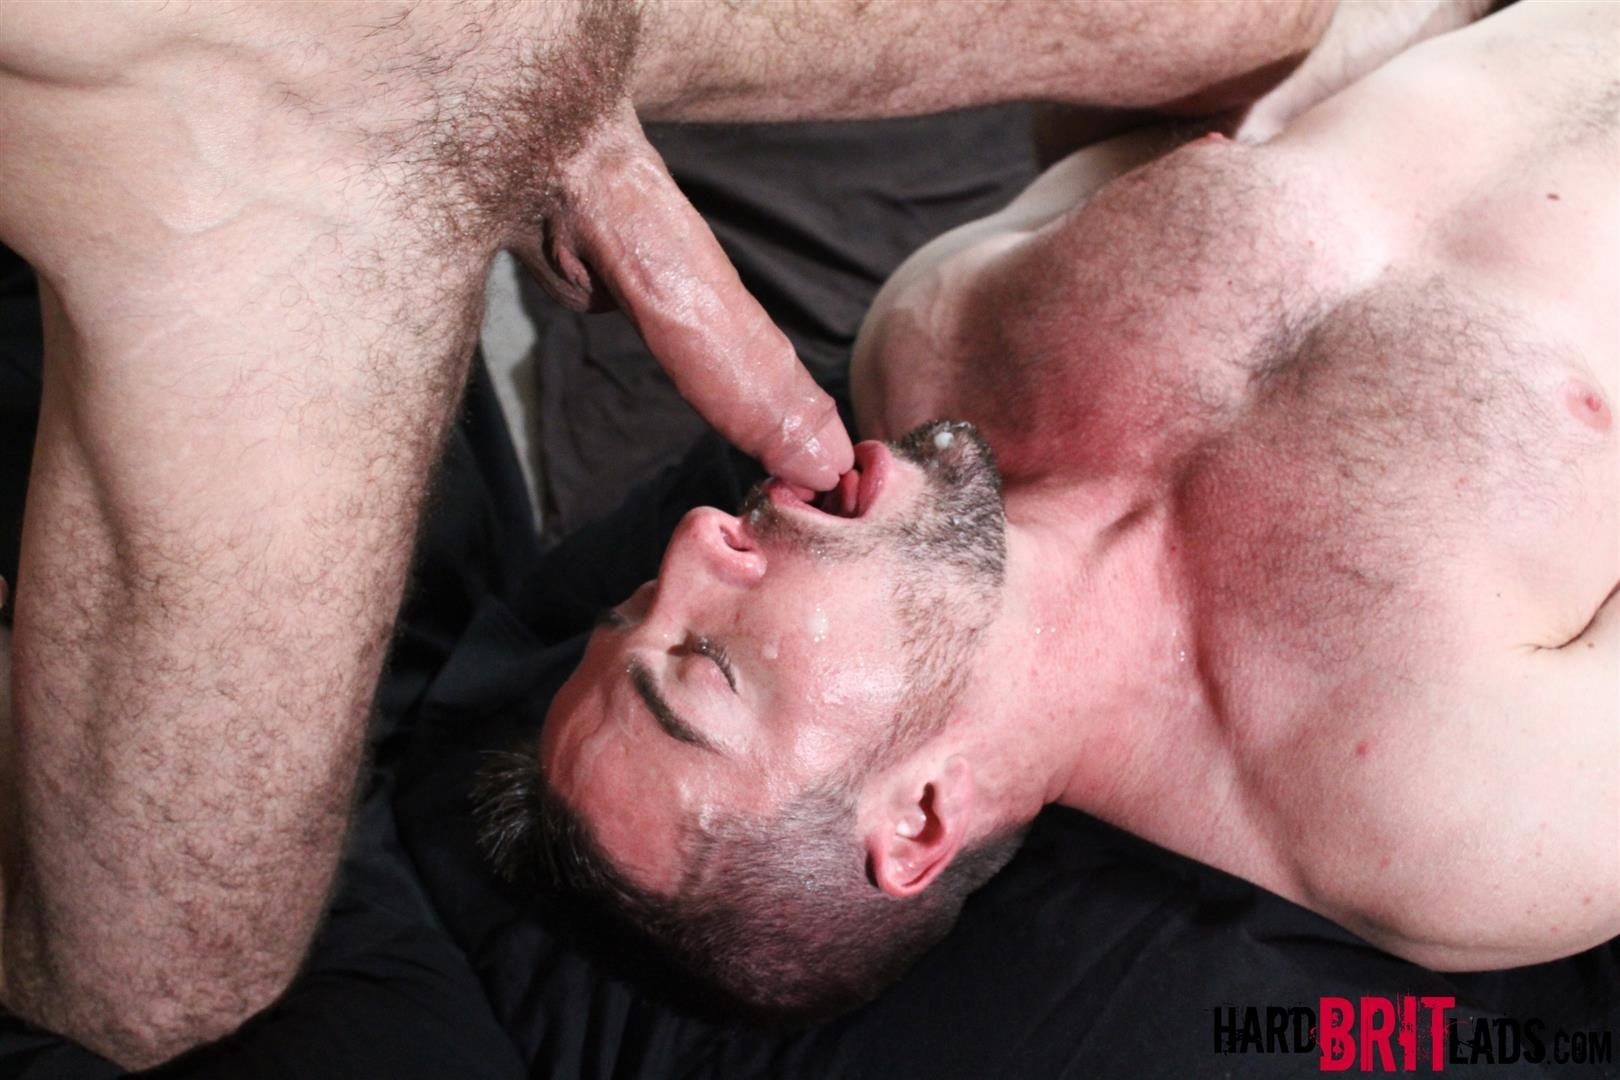 Hard Brit Lads Craig Daniel Scott Hunter Hairy Muscle Hunks With Big Uncut Cocks Fucking Amateur Gay Porn 21 Hairy Muscle Hunks Fucking And Eating Cum From Big Uncut Cocks